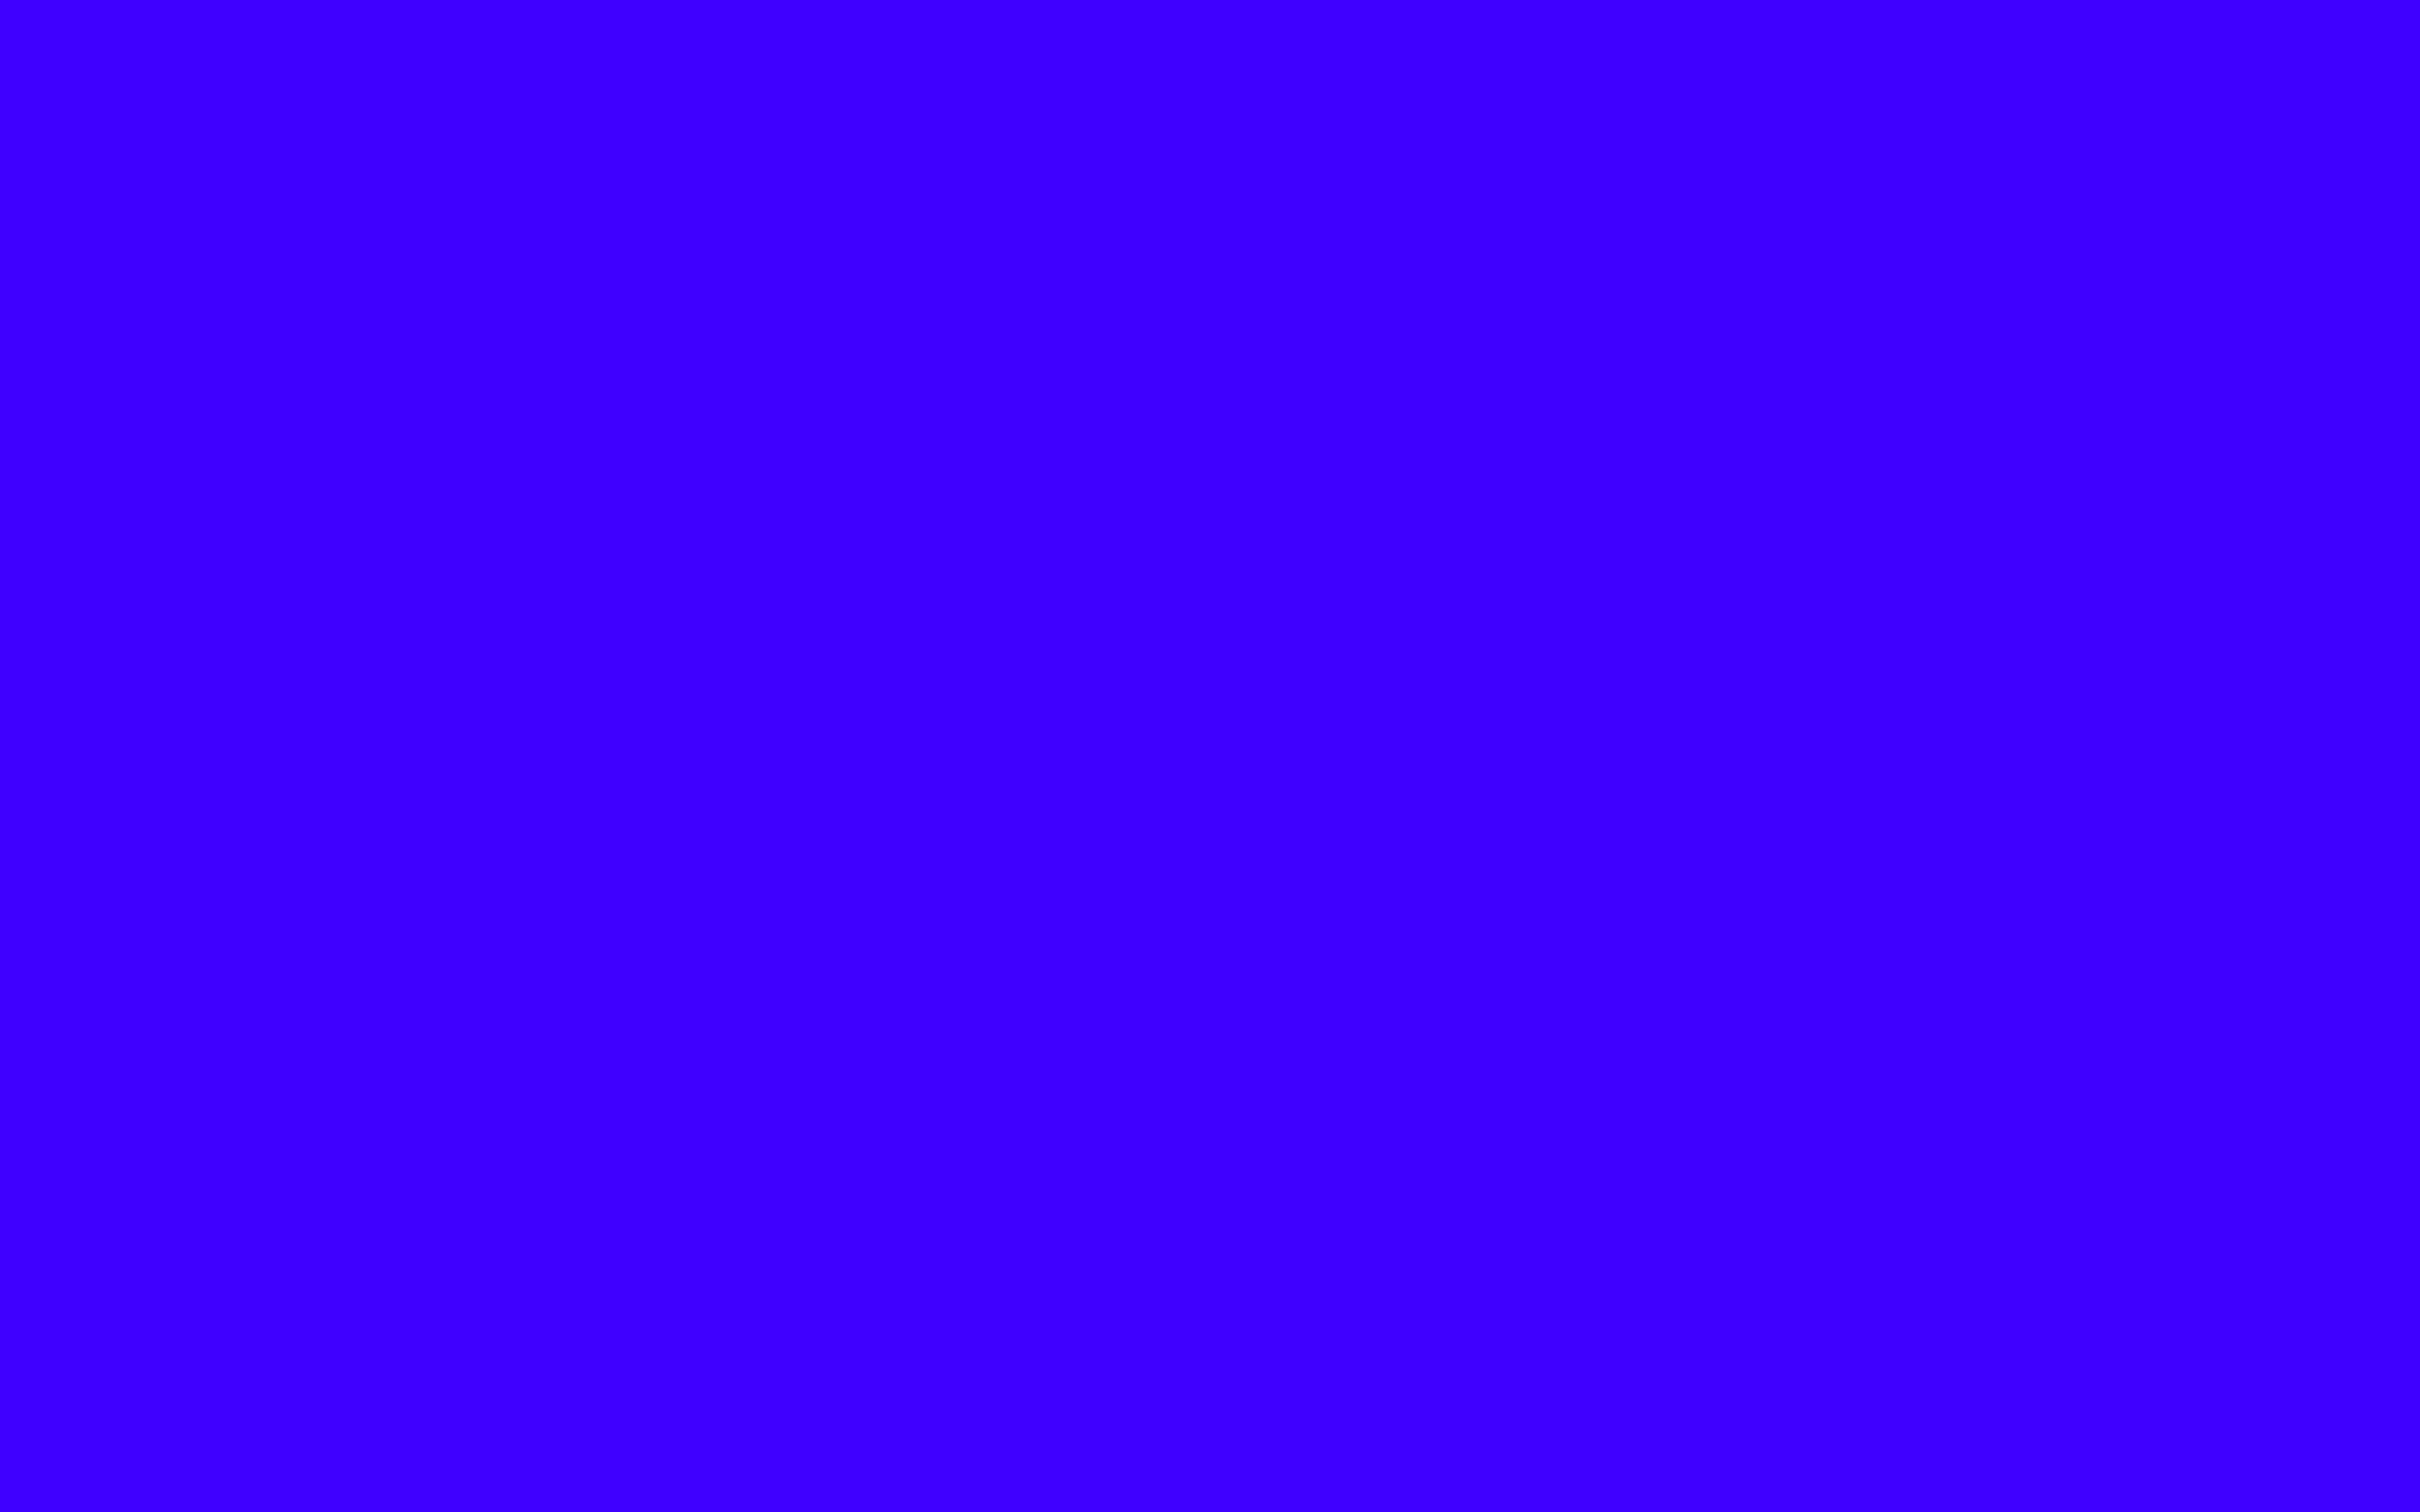 2880x1800 Electric Ultramarine Solid Color Background 2880x1800